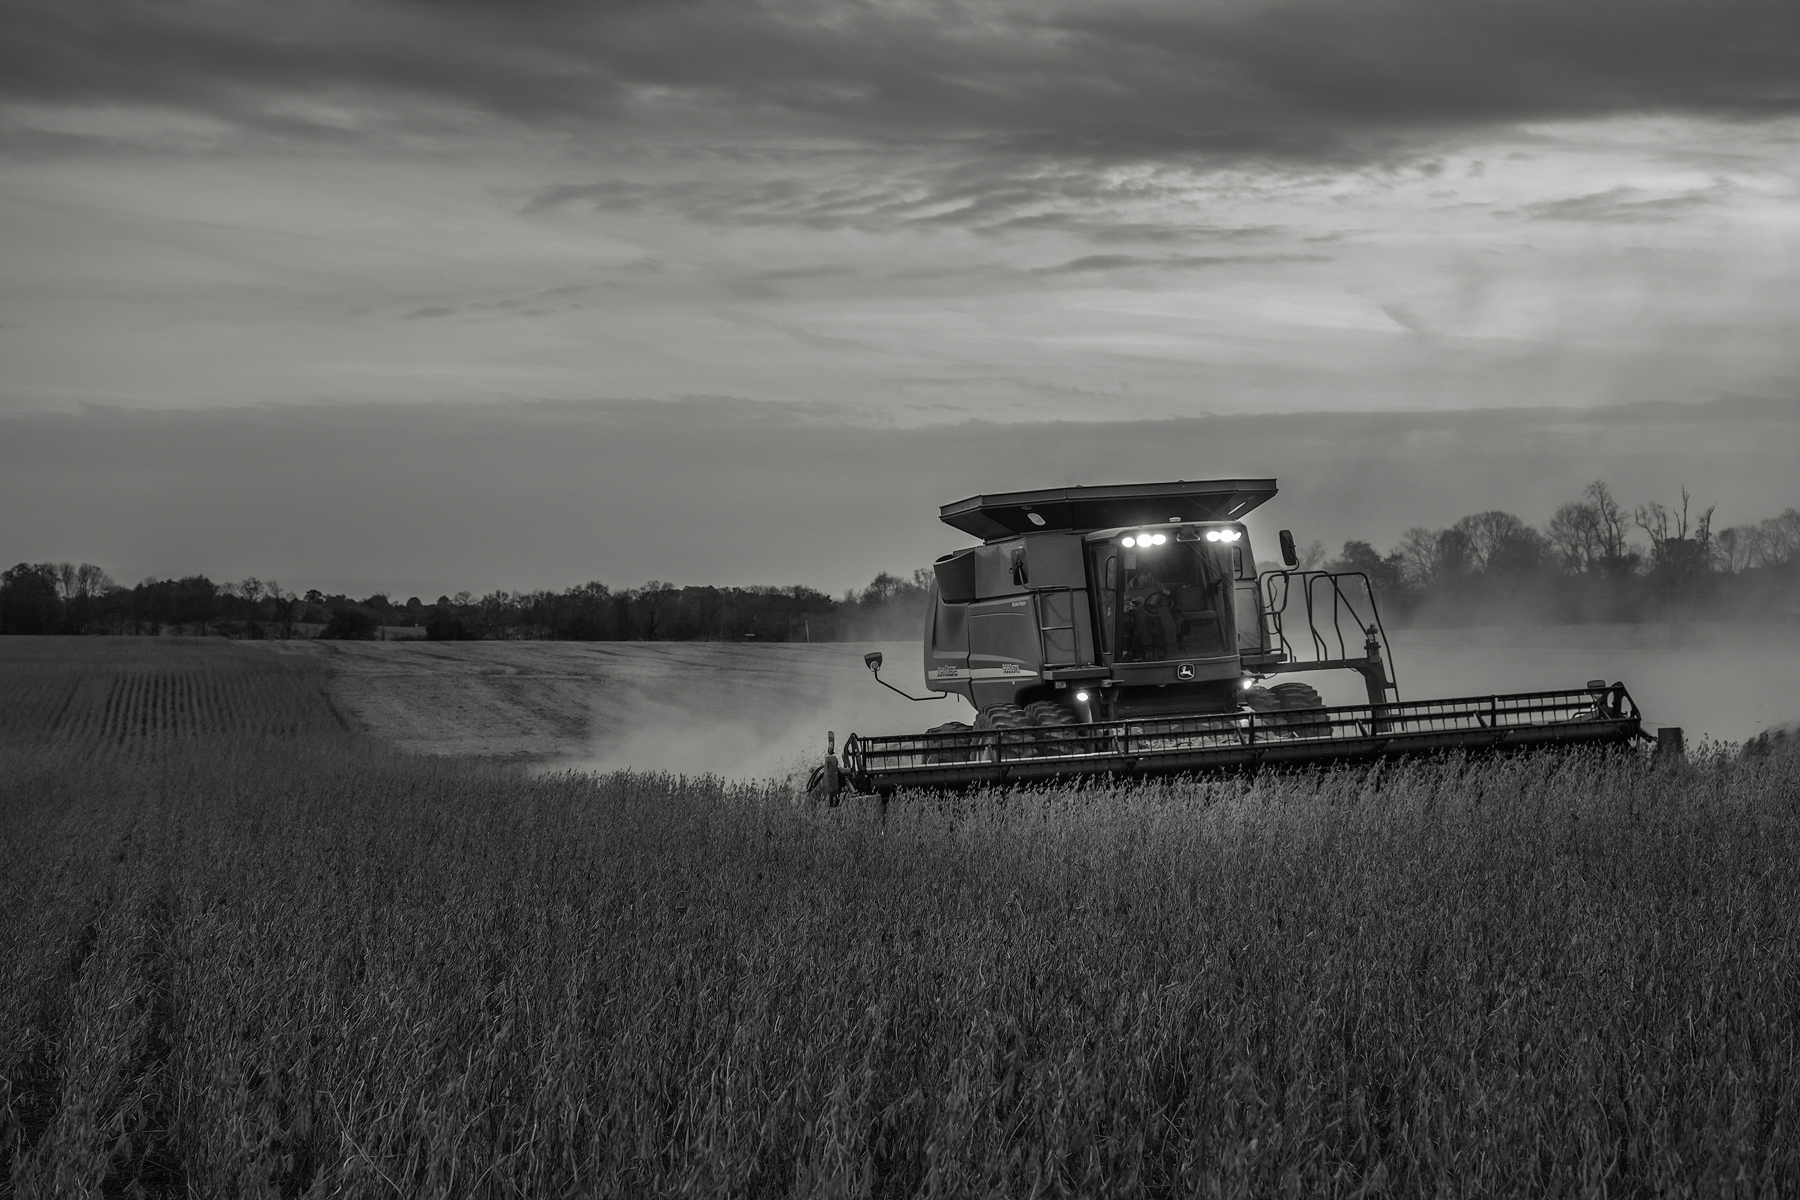 Running lights from Steve's combine light the way as another row is harvested.Fuji X-T2 and a Fujinon XF16-55mm f2.8 WR at 35mm. Image exposed at ISO 800 at f4 for 1/60 of a second.